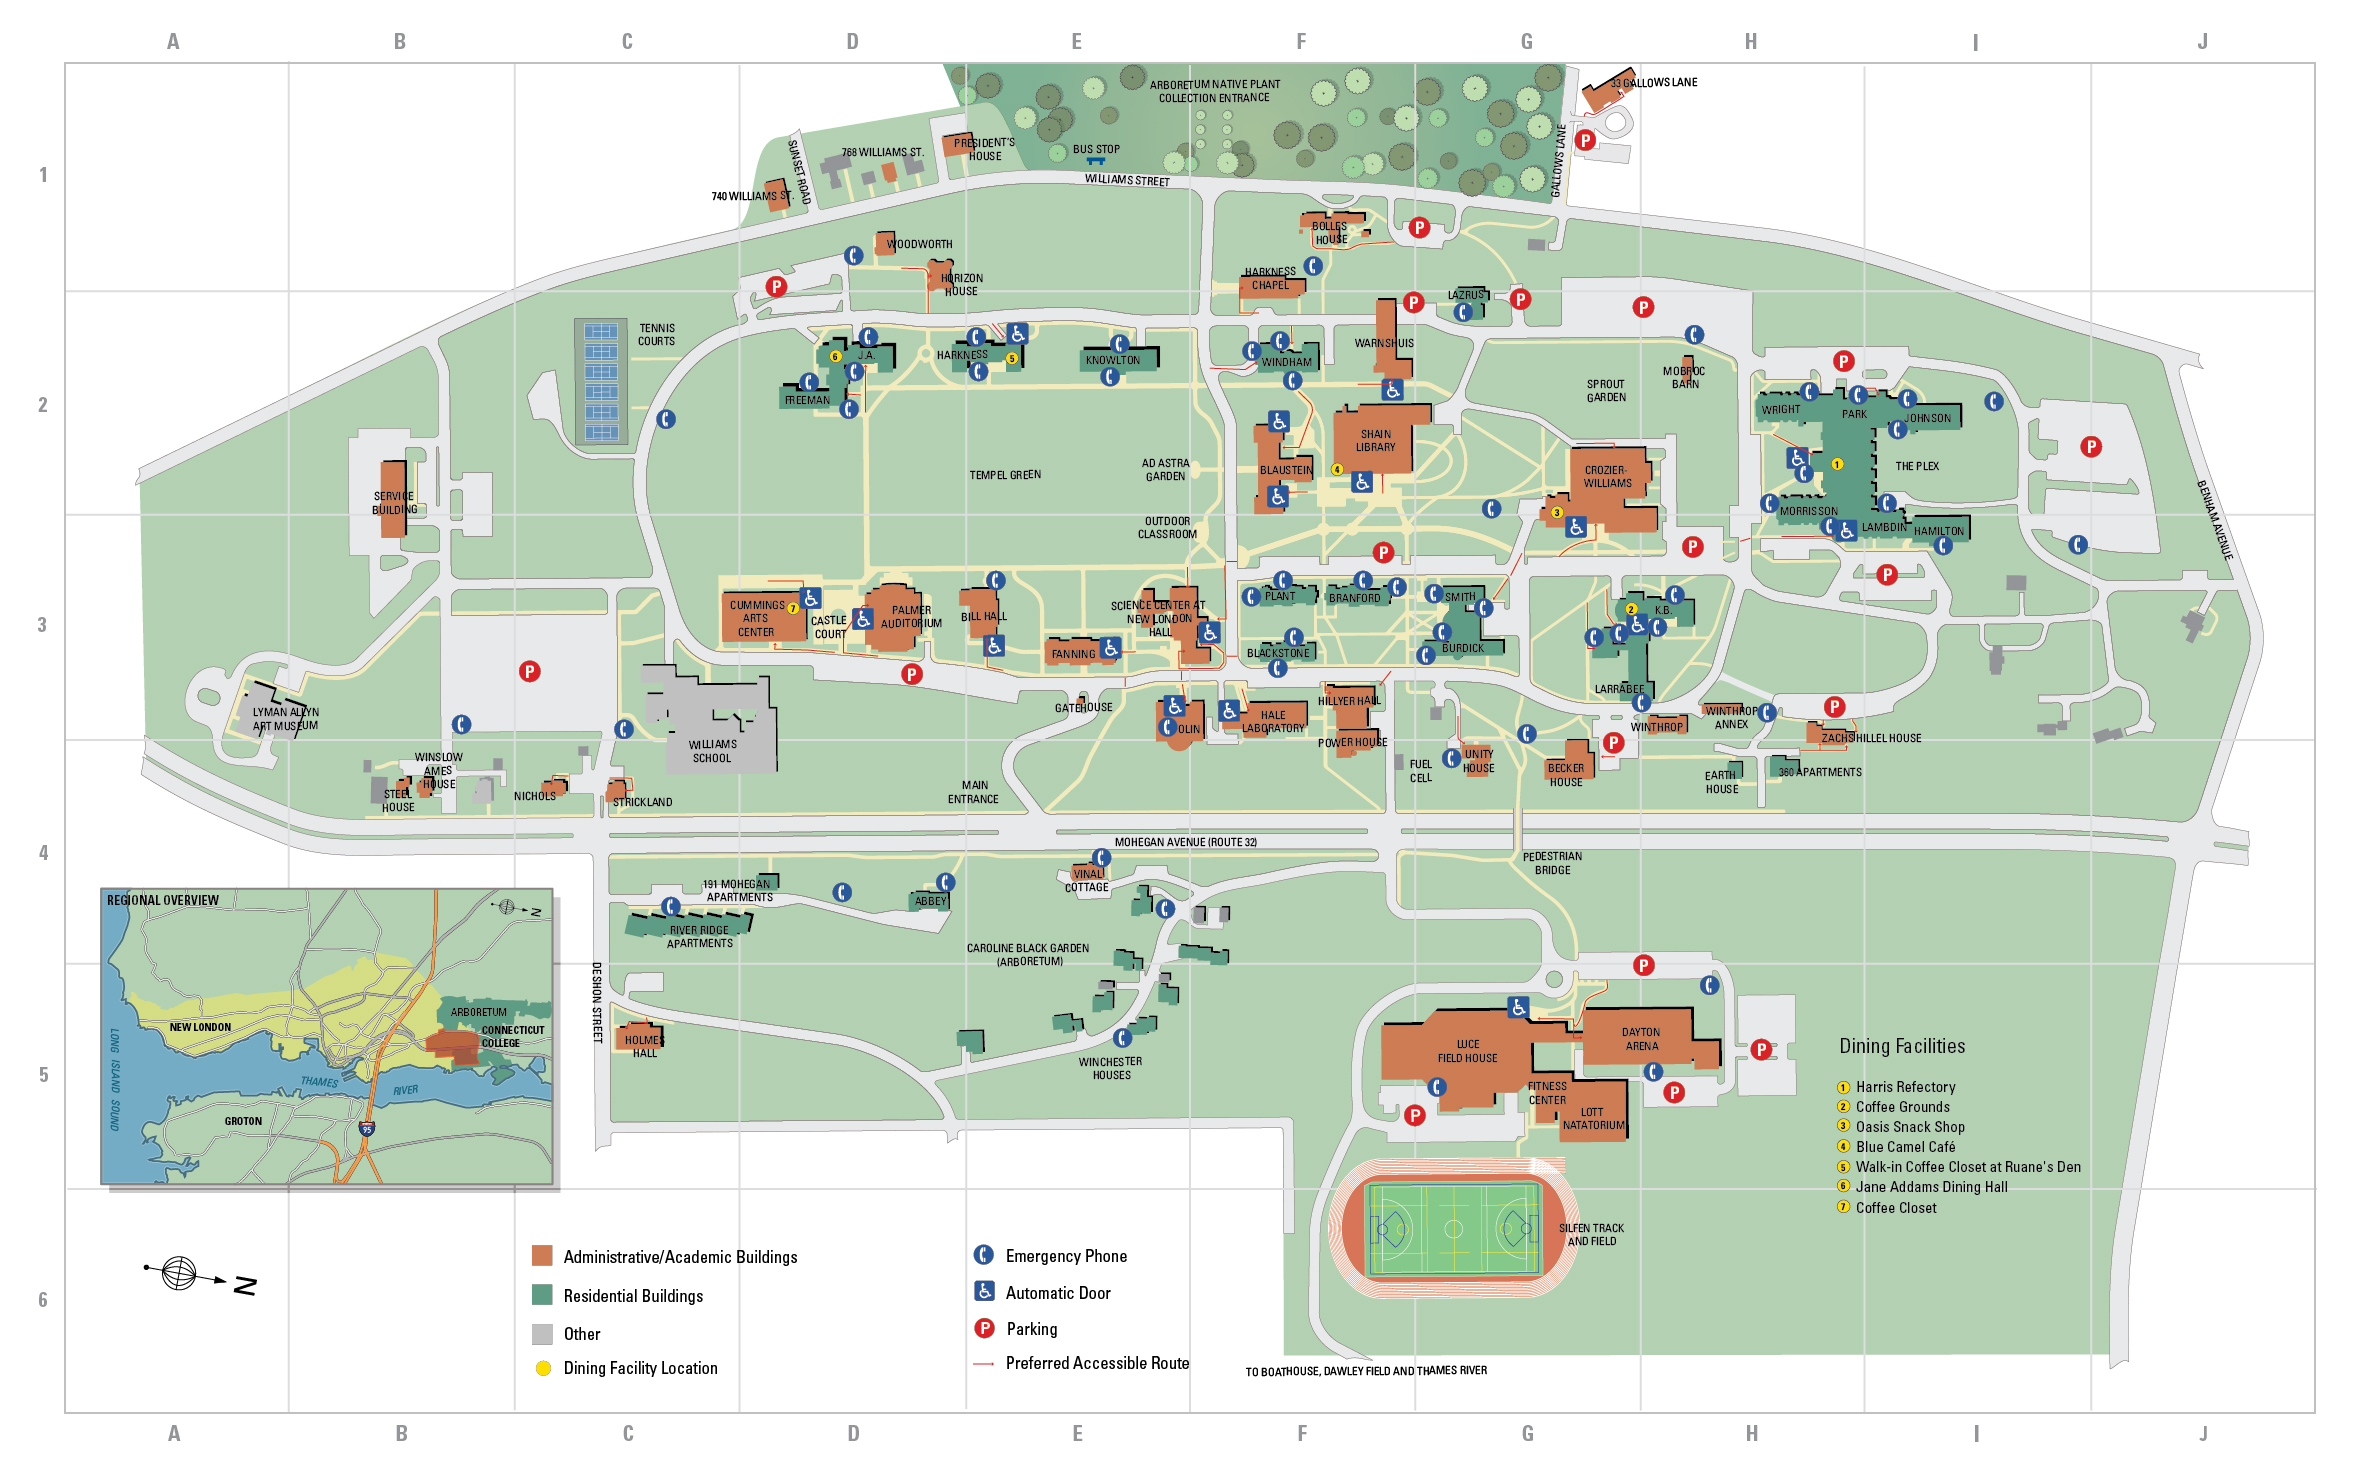 conn coll campus map Campus Map Connecticut College conn coll campus map